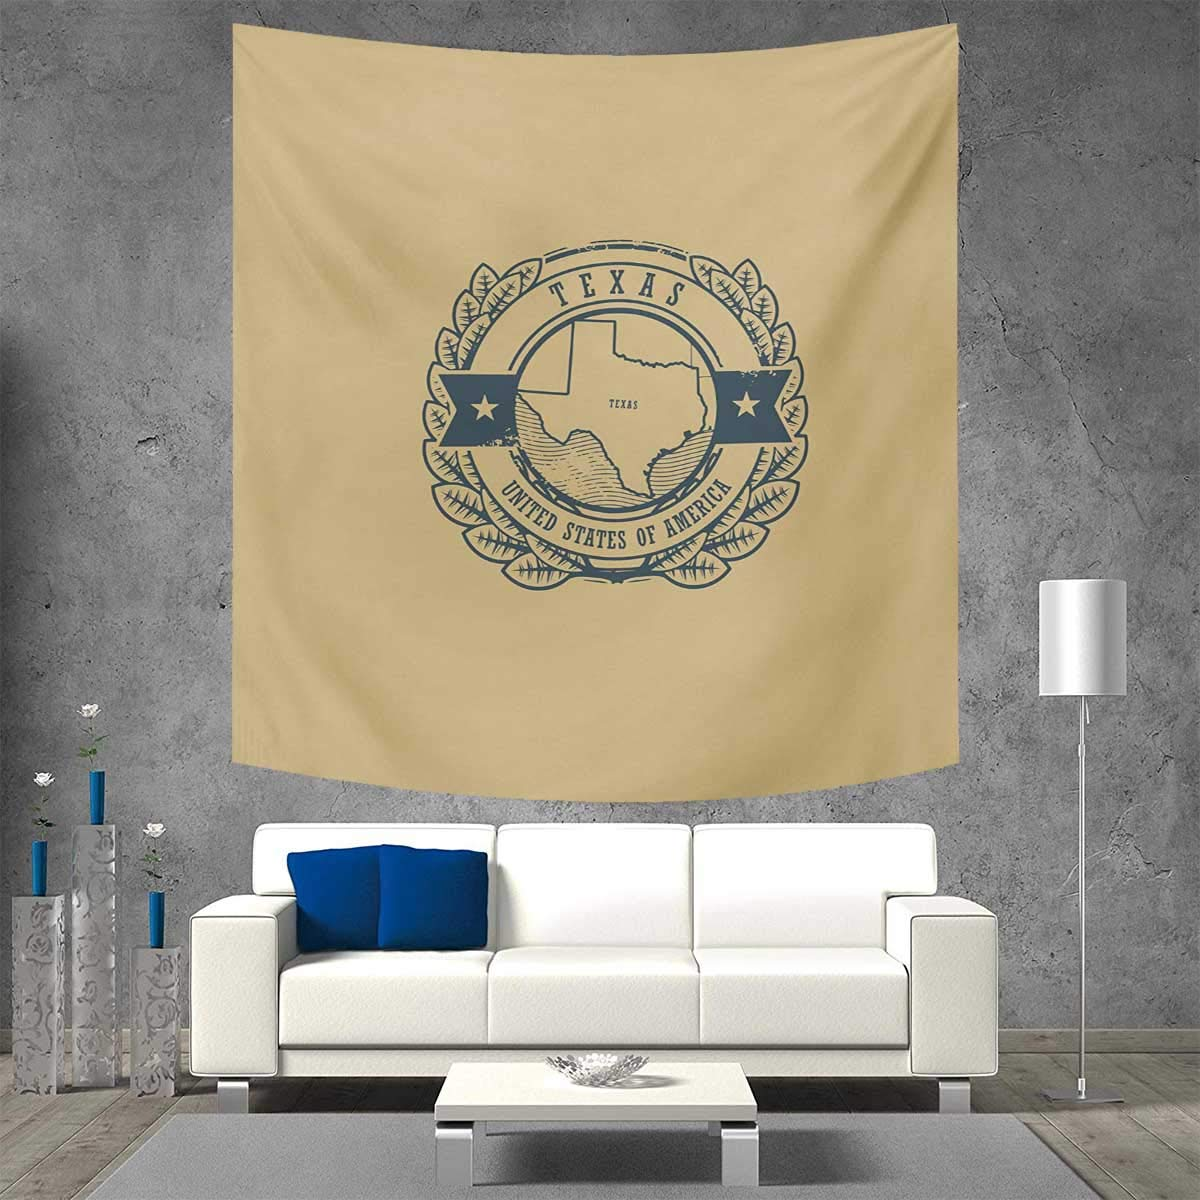 Anniutwo Texas Square Wall Tapestry Grunge Retro Rubber Stamp with Name and Map of Texas United States of America Home Decorations for Living Room Bedroom 55W x 55L Inch Khaki Cadet Blue